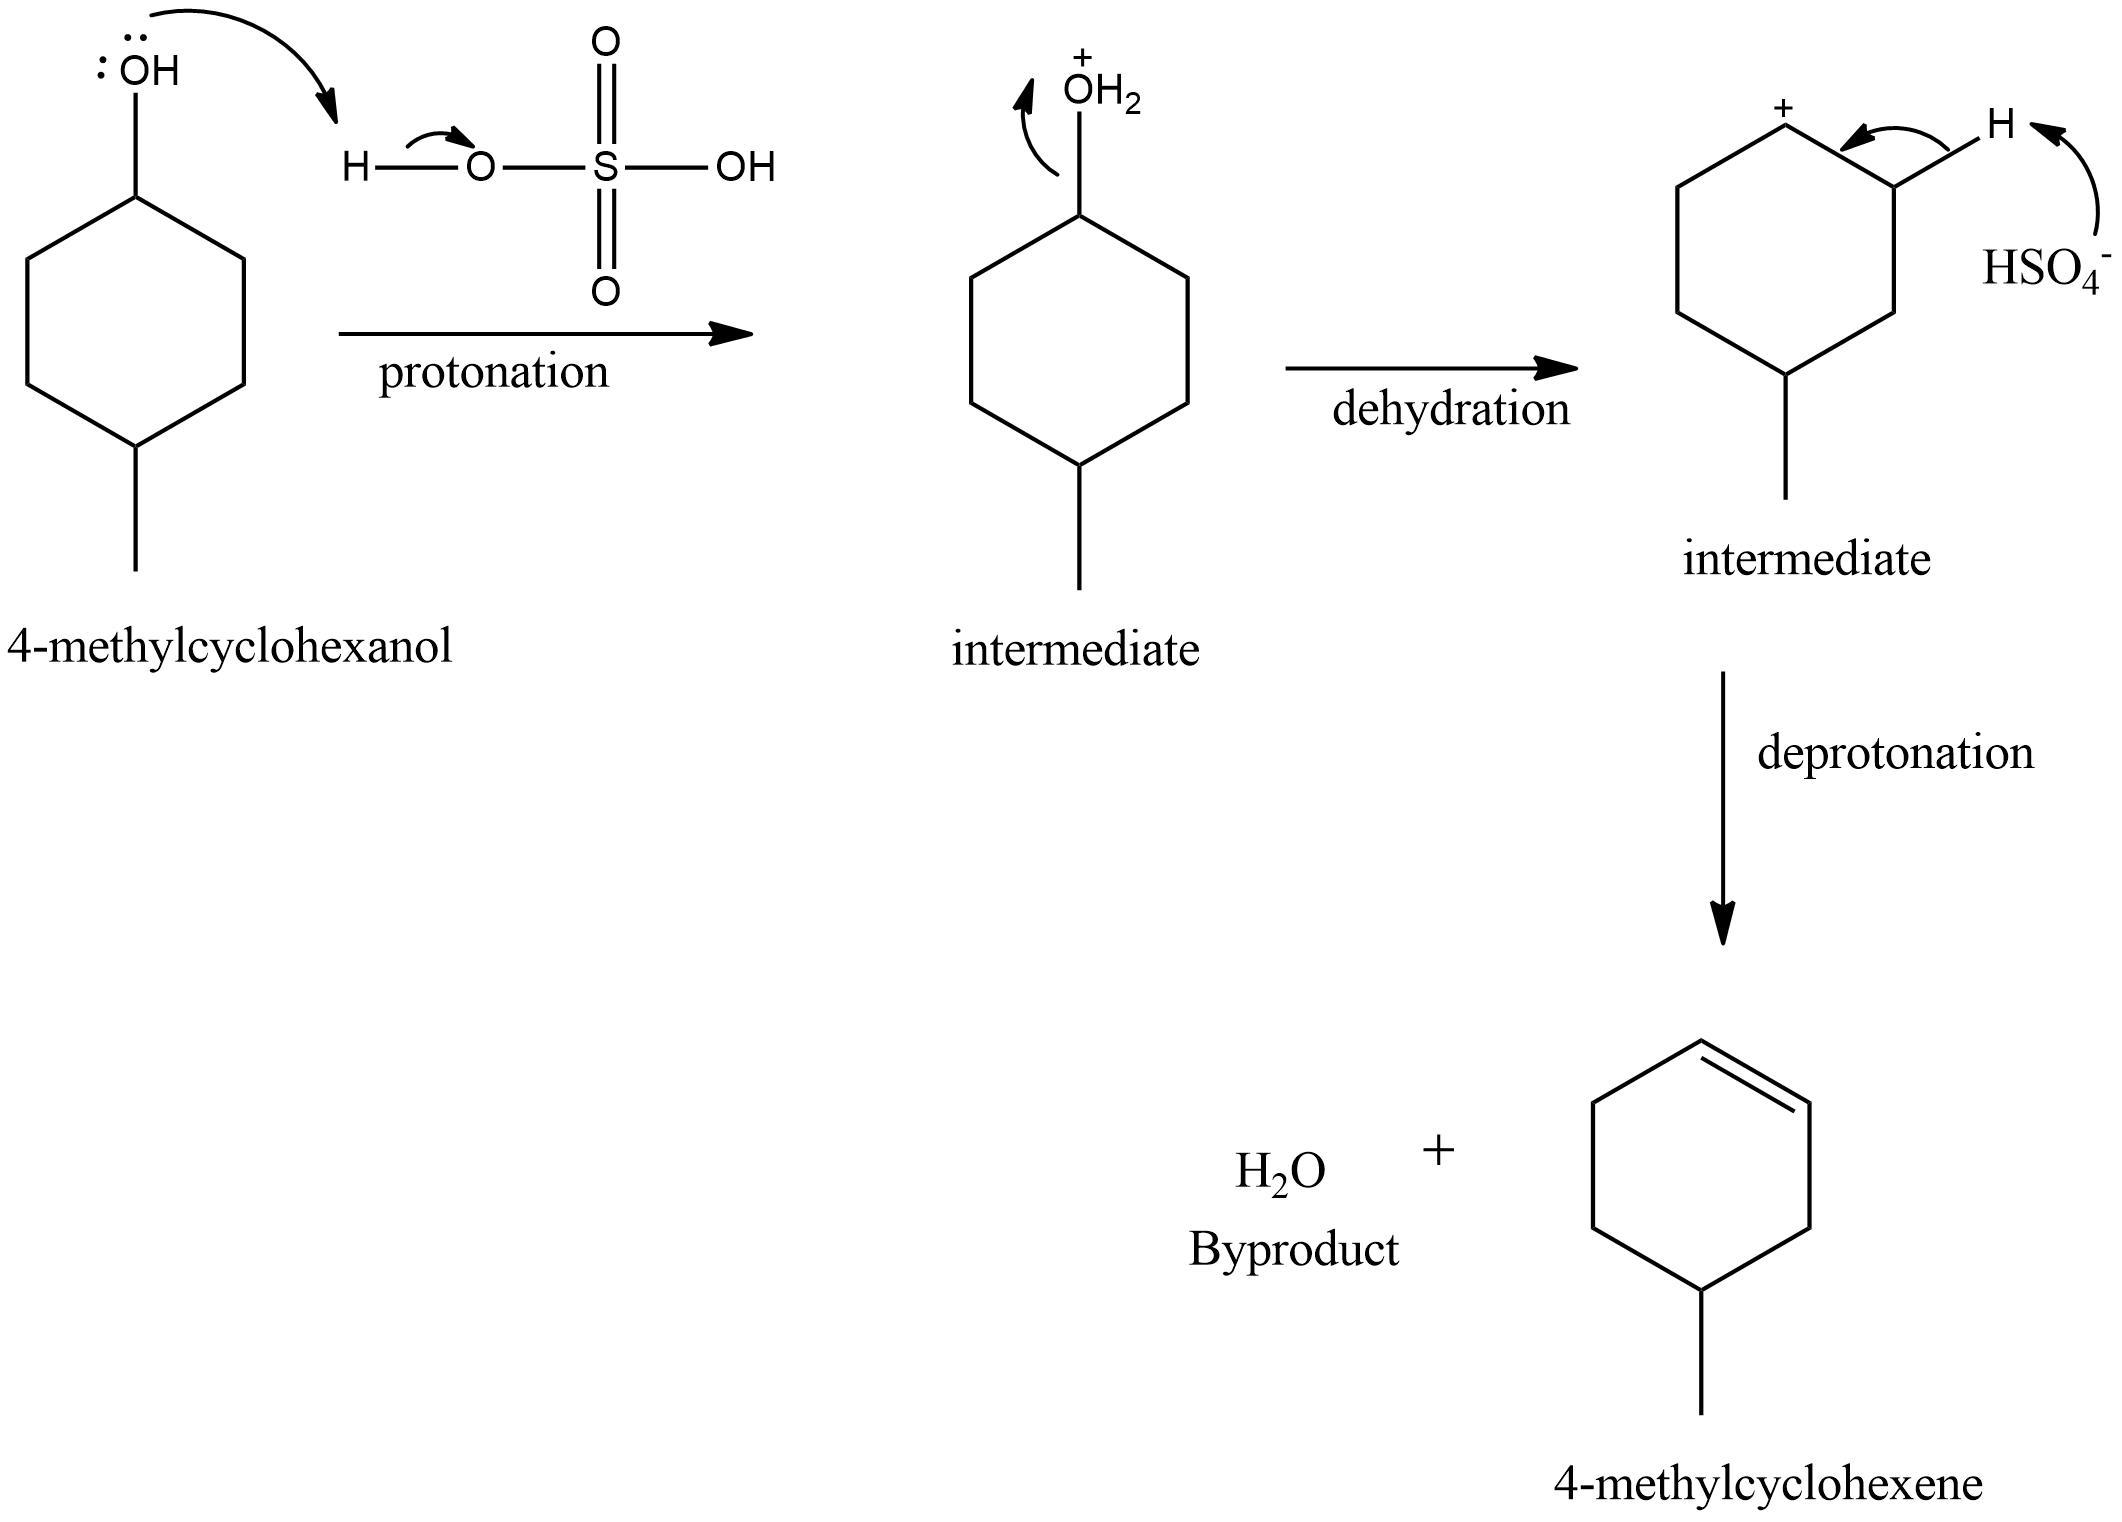 Write a reasonable and detailed mechanism for the